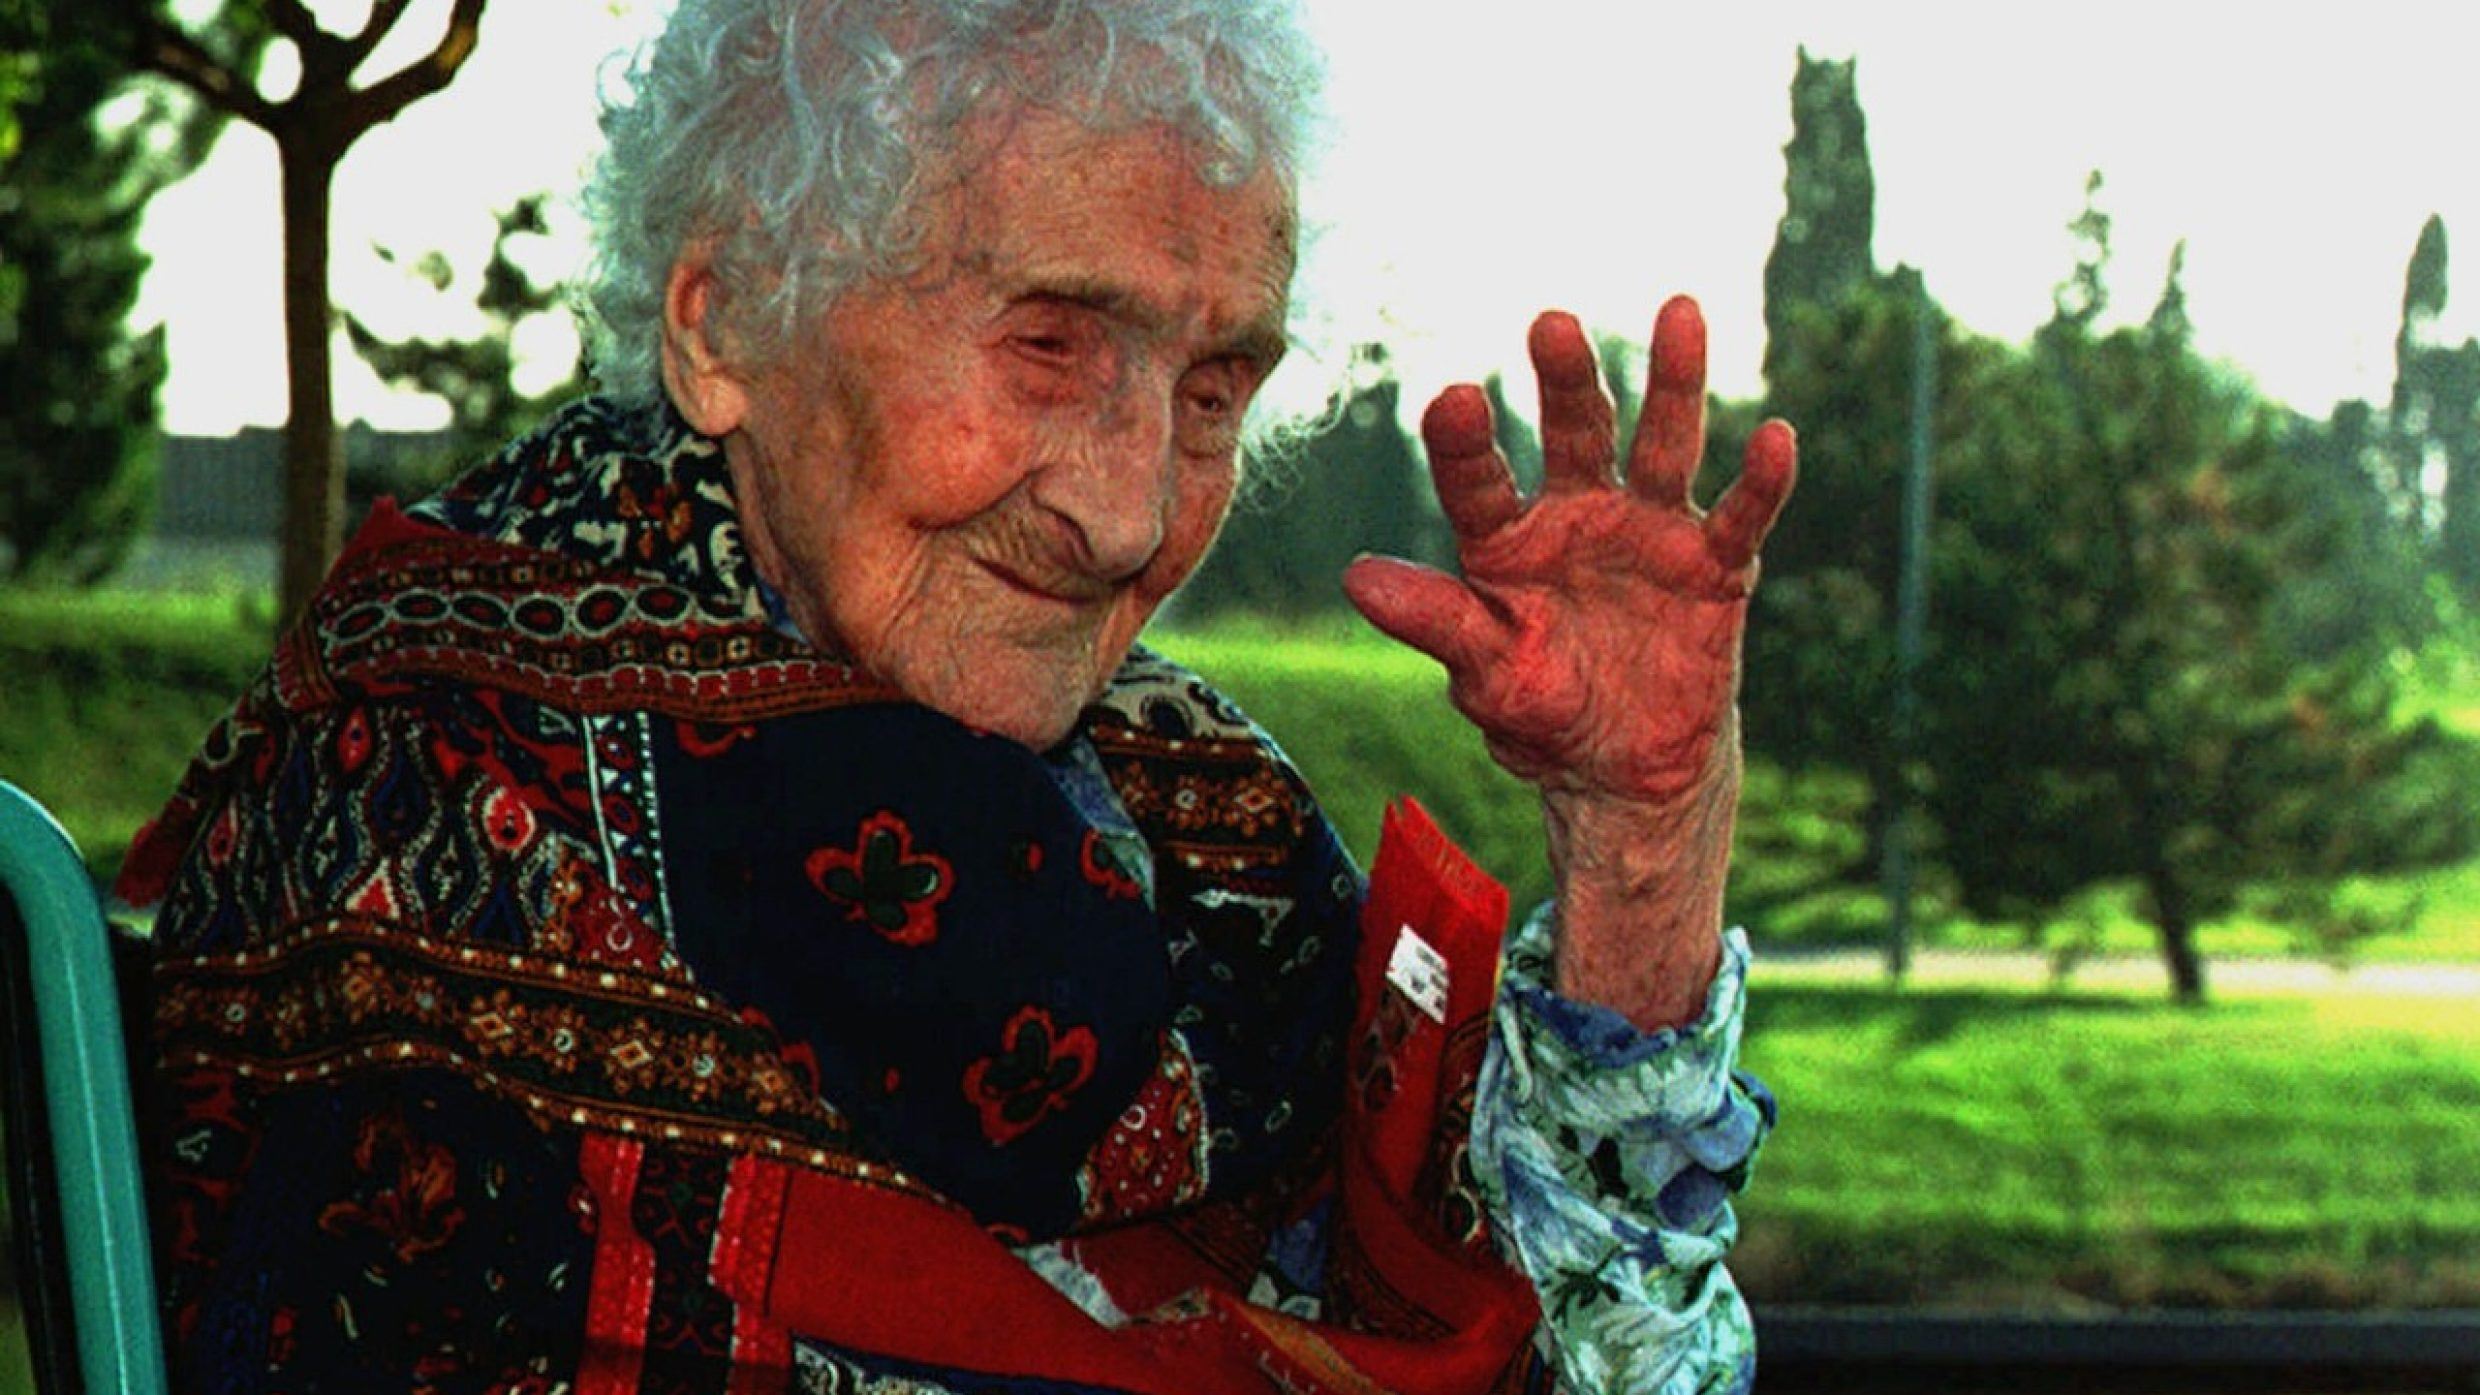 With an average life expectancy of just under 72, man is in the top ten species in terms of longevity. The longest-living person on record is held by the French woman Jeanne Calment, who lived to 122 (1875-1997).